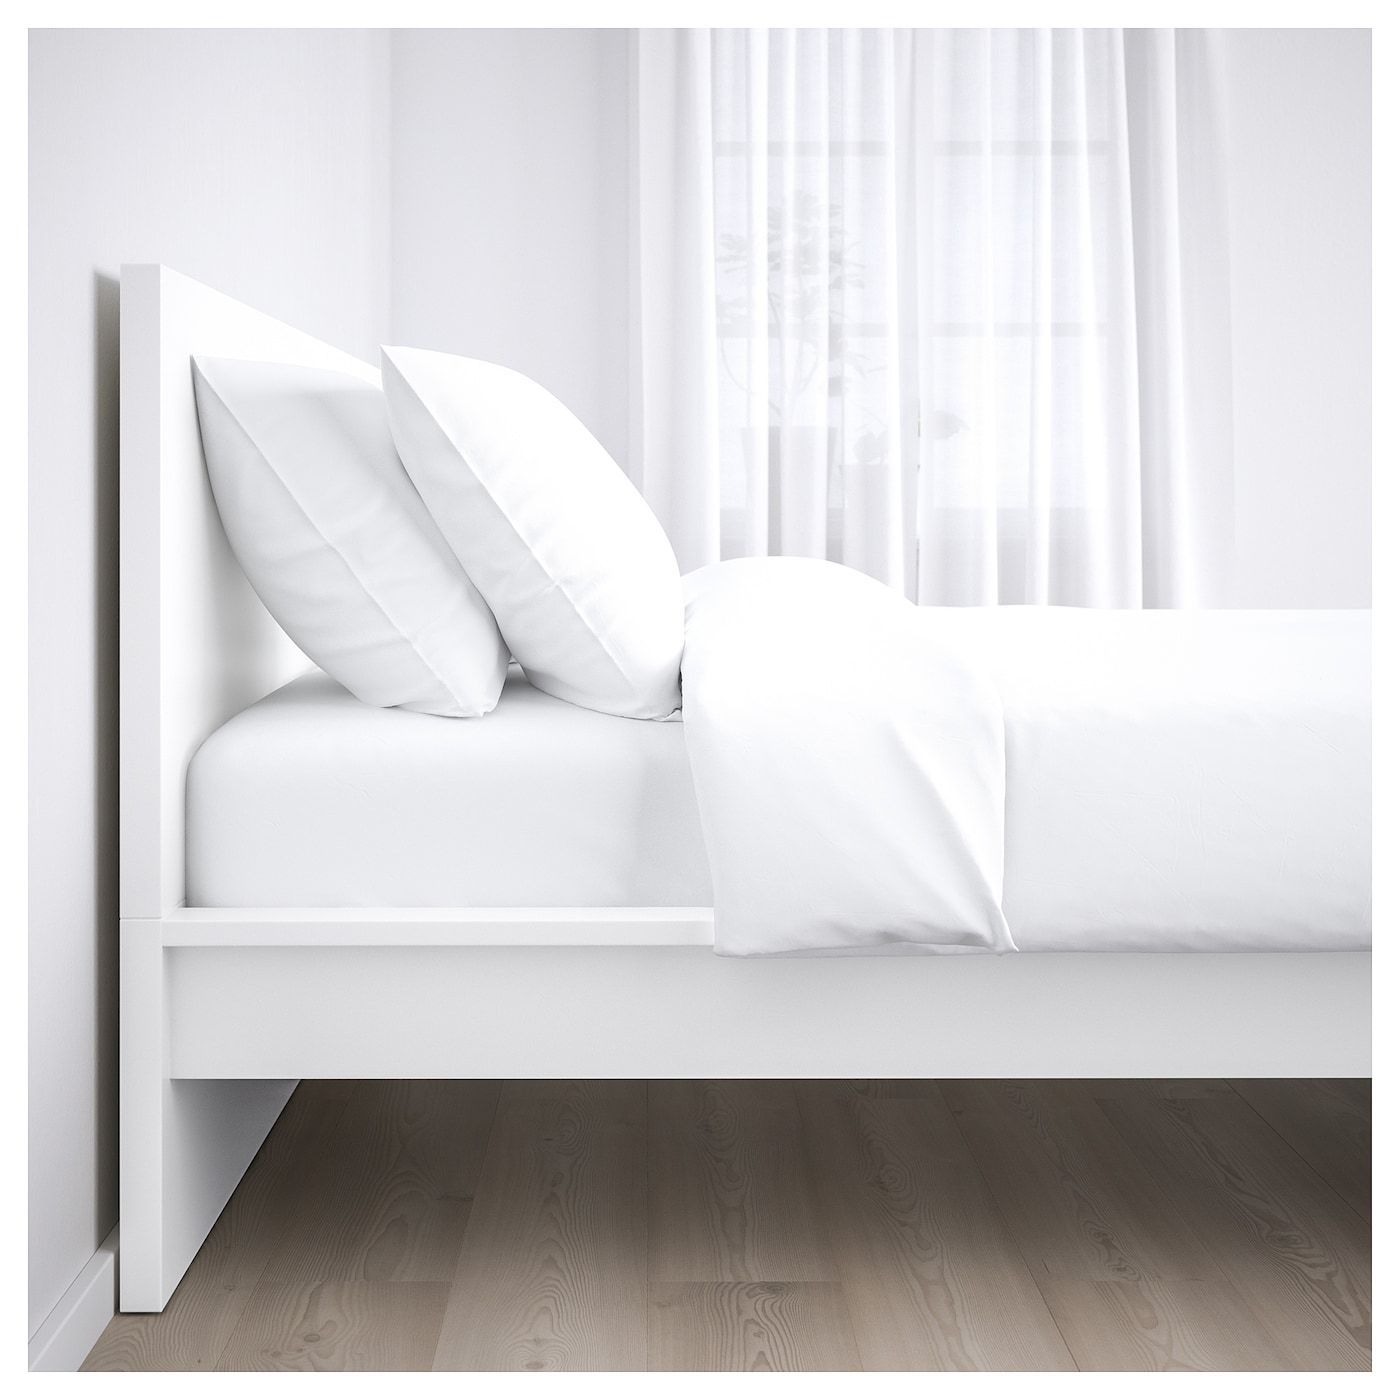 Malm Bed Frame High White Ikea Bed Bedframe Frame High Ikea Malm White In 2020 Ikea Bett Bettgestell Weisse Mobel